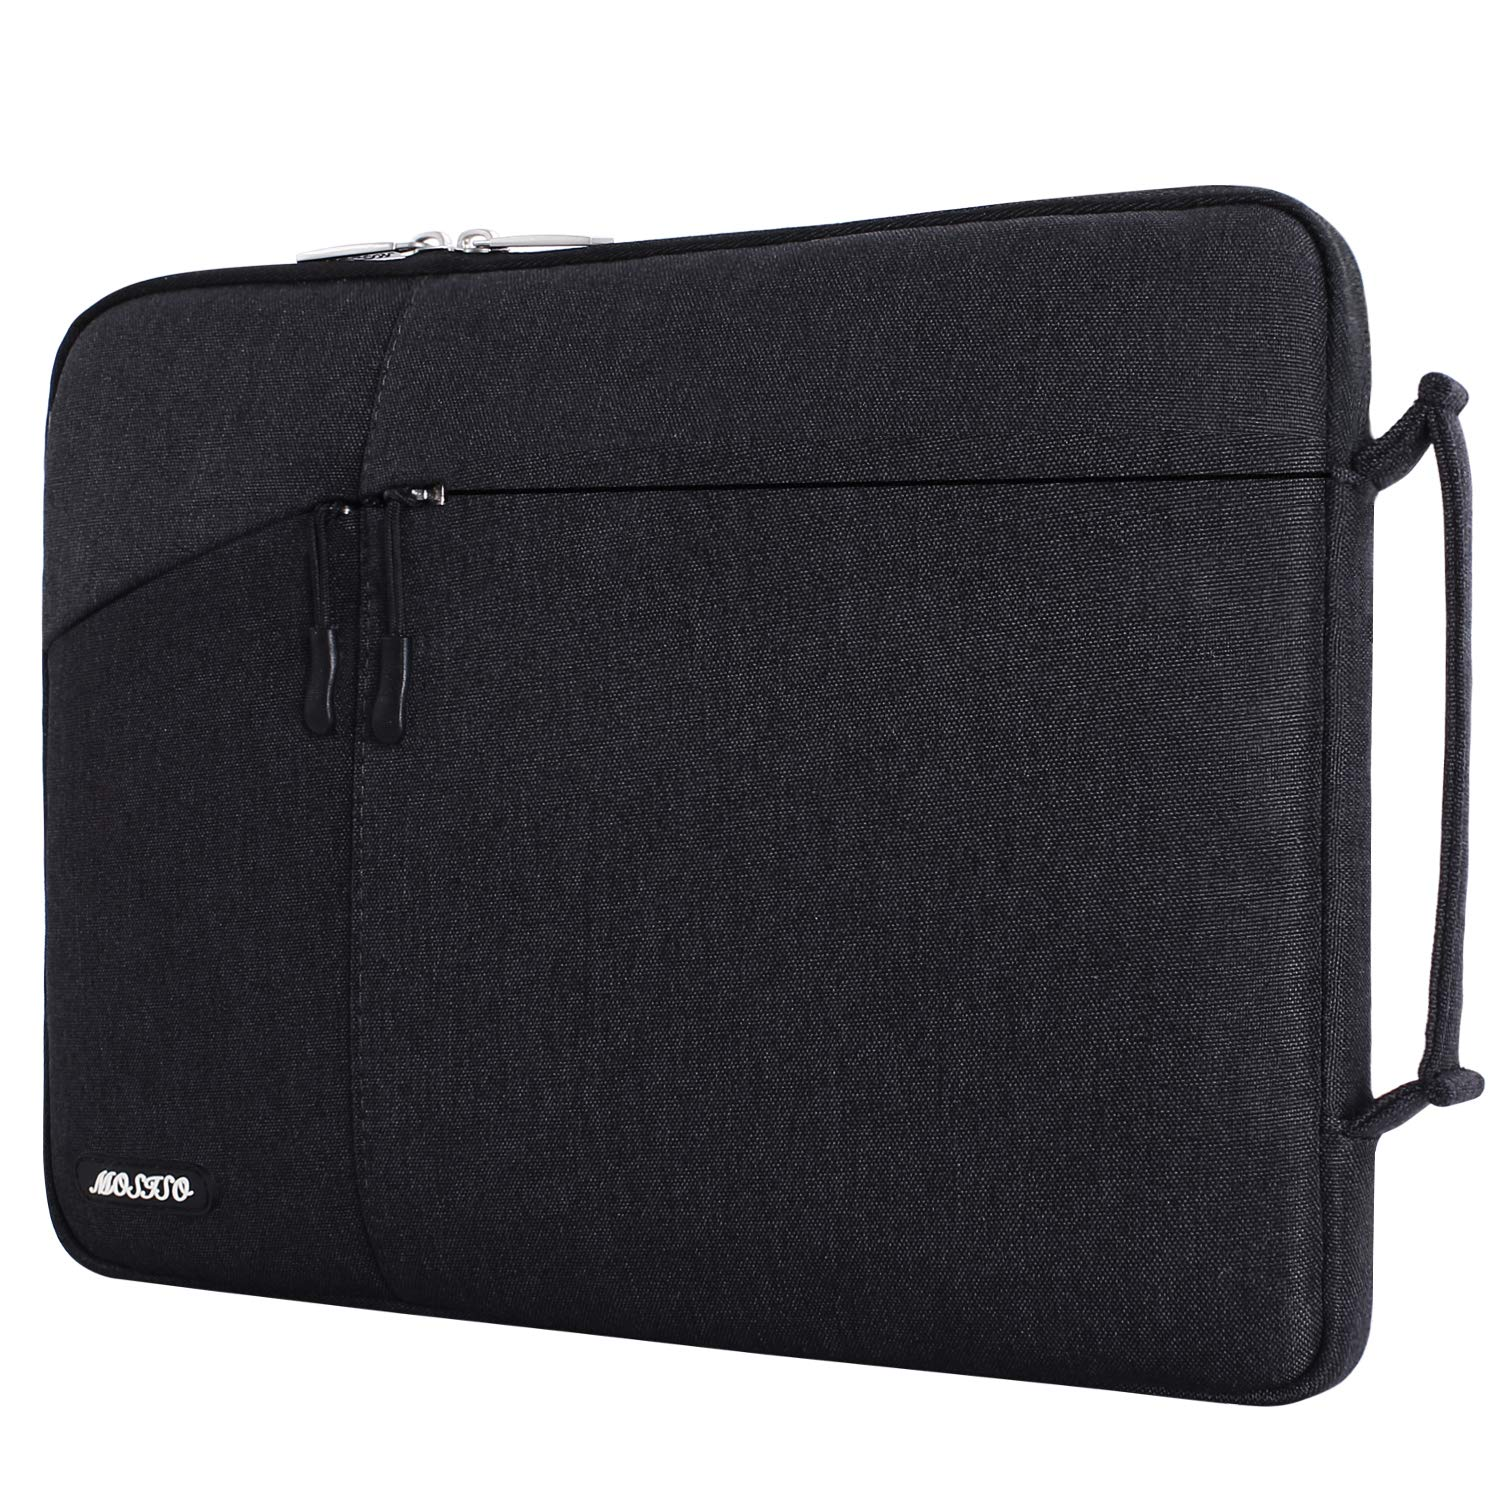 MOSISO Laptop Briefcase Handbag Compatible 13-13.3 Inch MacBook Air, MacBook Pro, Notebook Computer Polyester Protective Sleeve Case Carrying Bag with Accessory Pockets, Black